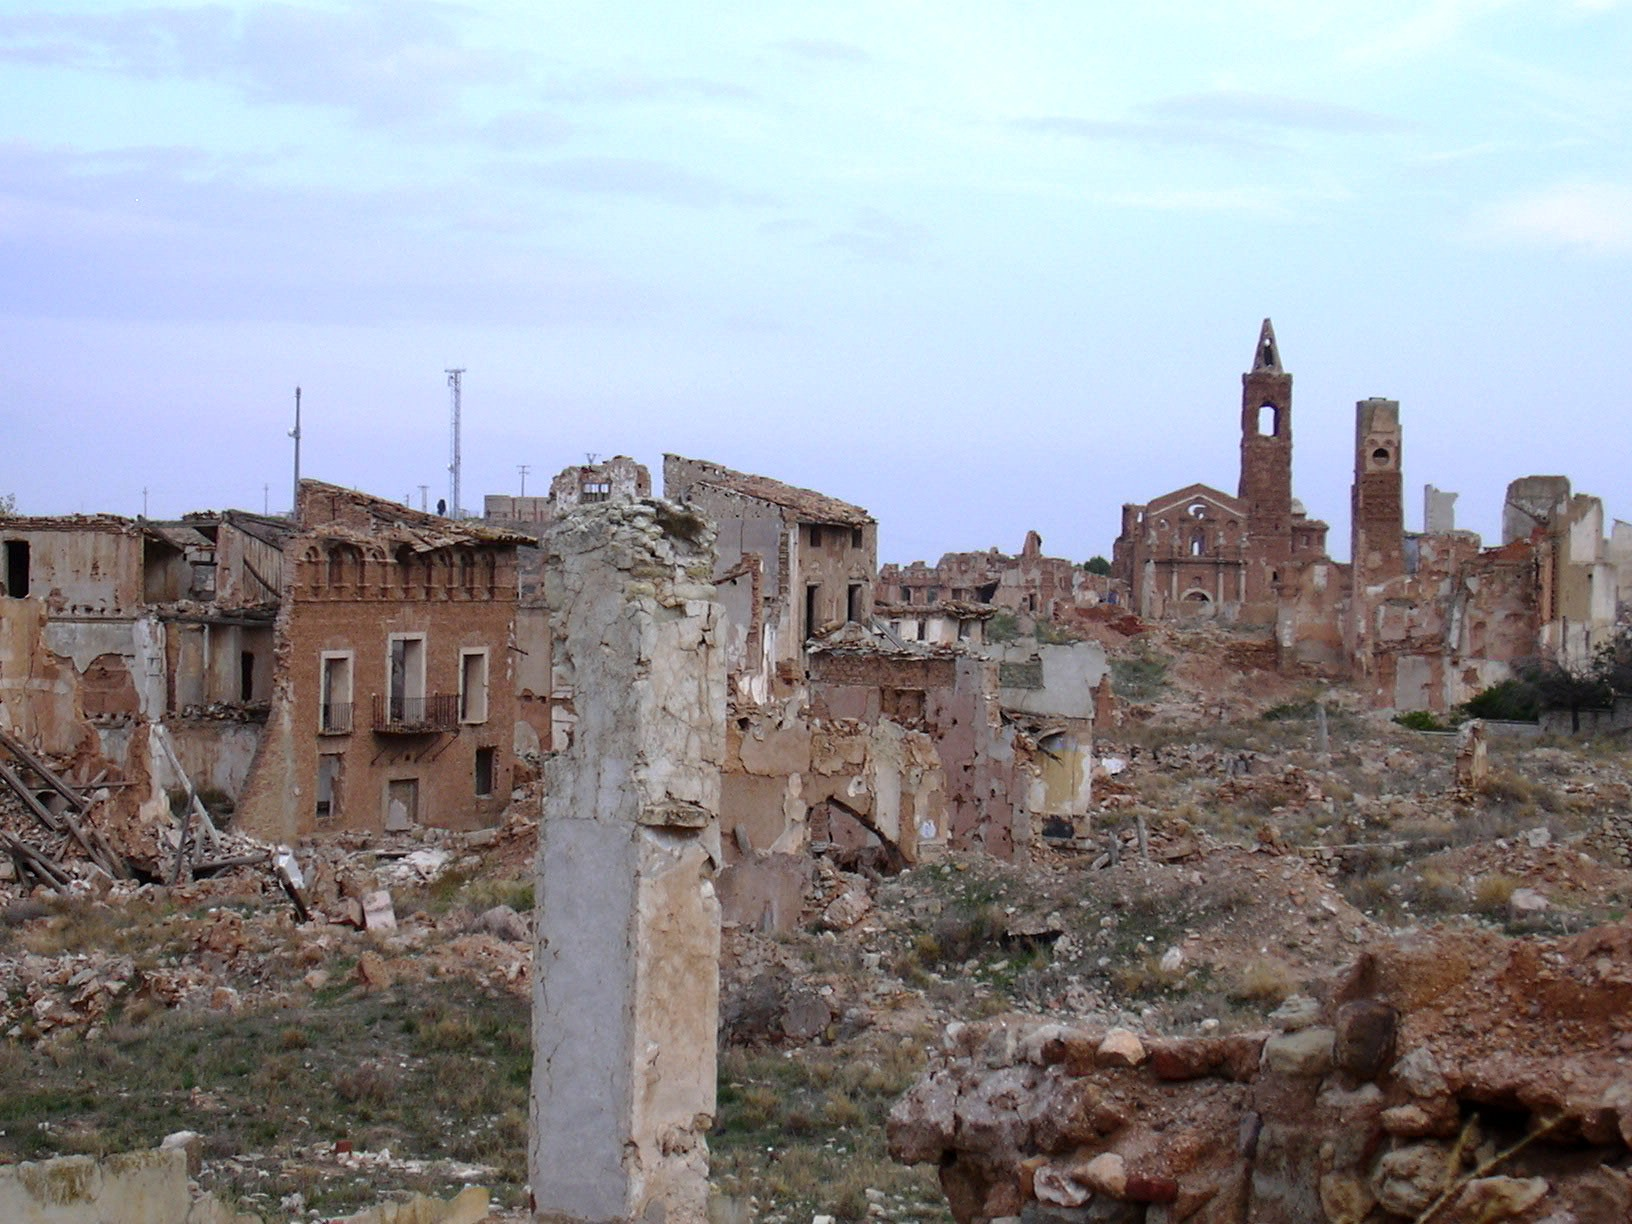 Datei:Belchite - Vista general01.JPG – Wikipedia